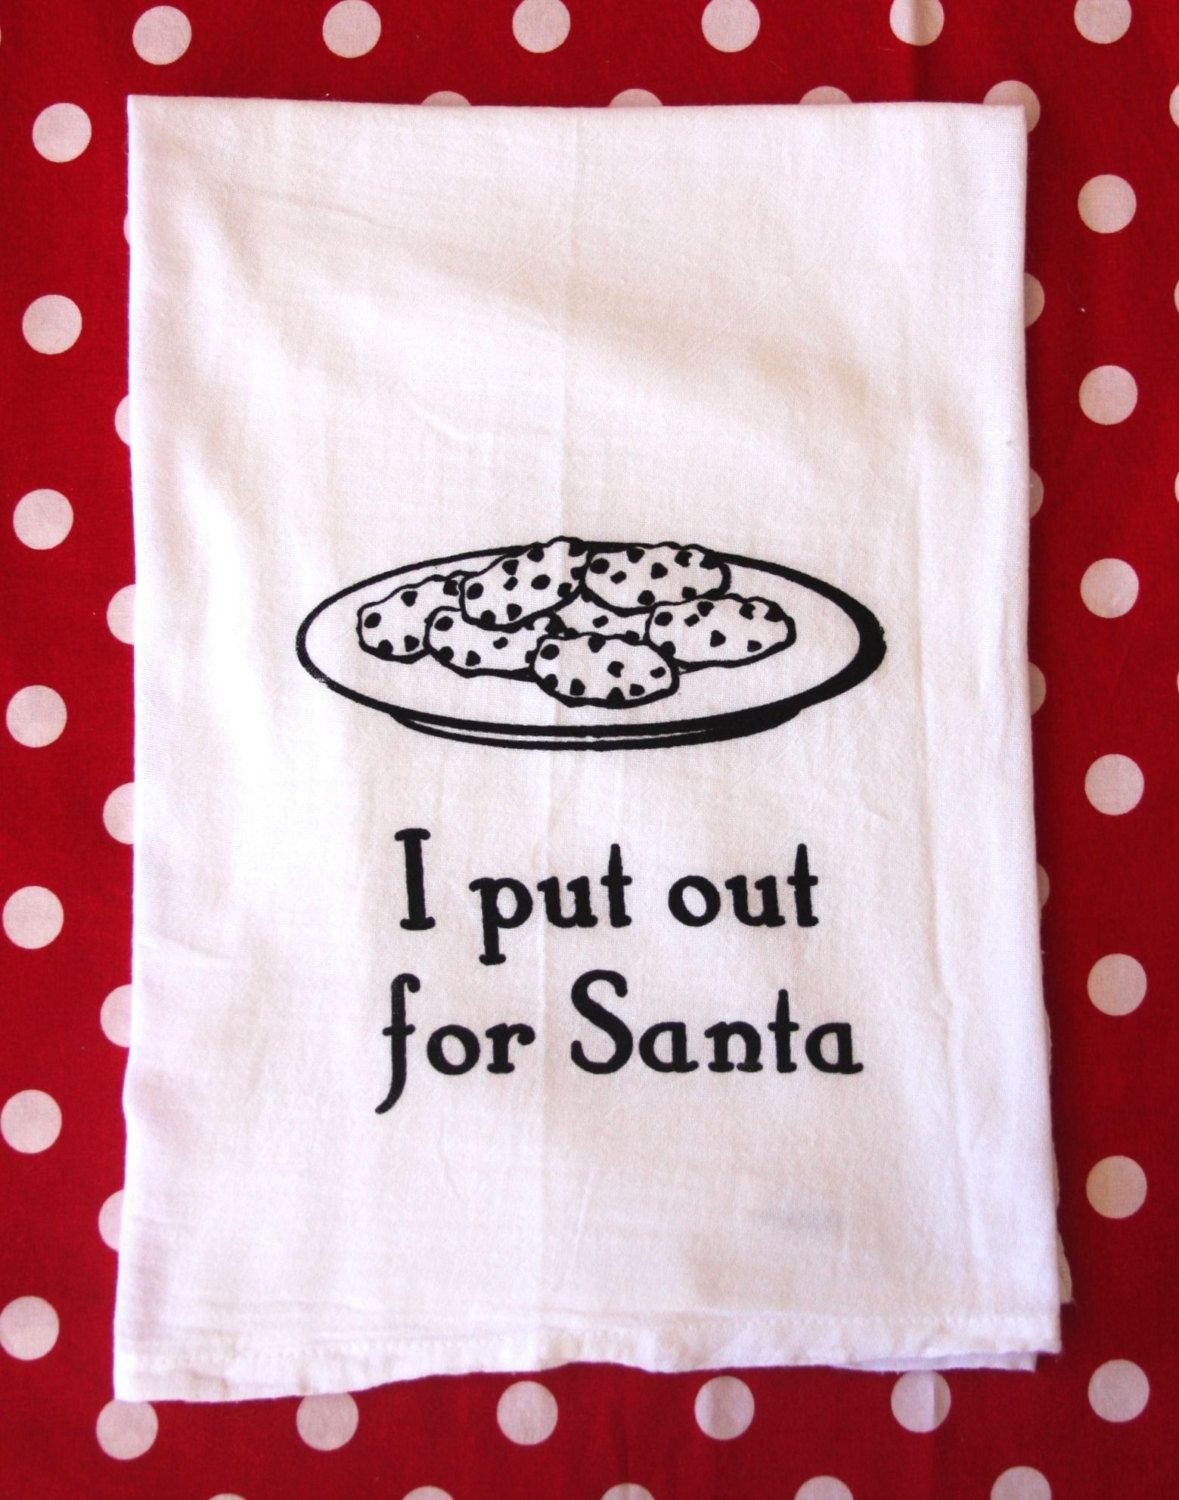 Christmas Holiday Flour Sack Towels- I Put Out for Santa | Towels ...